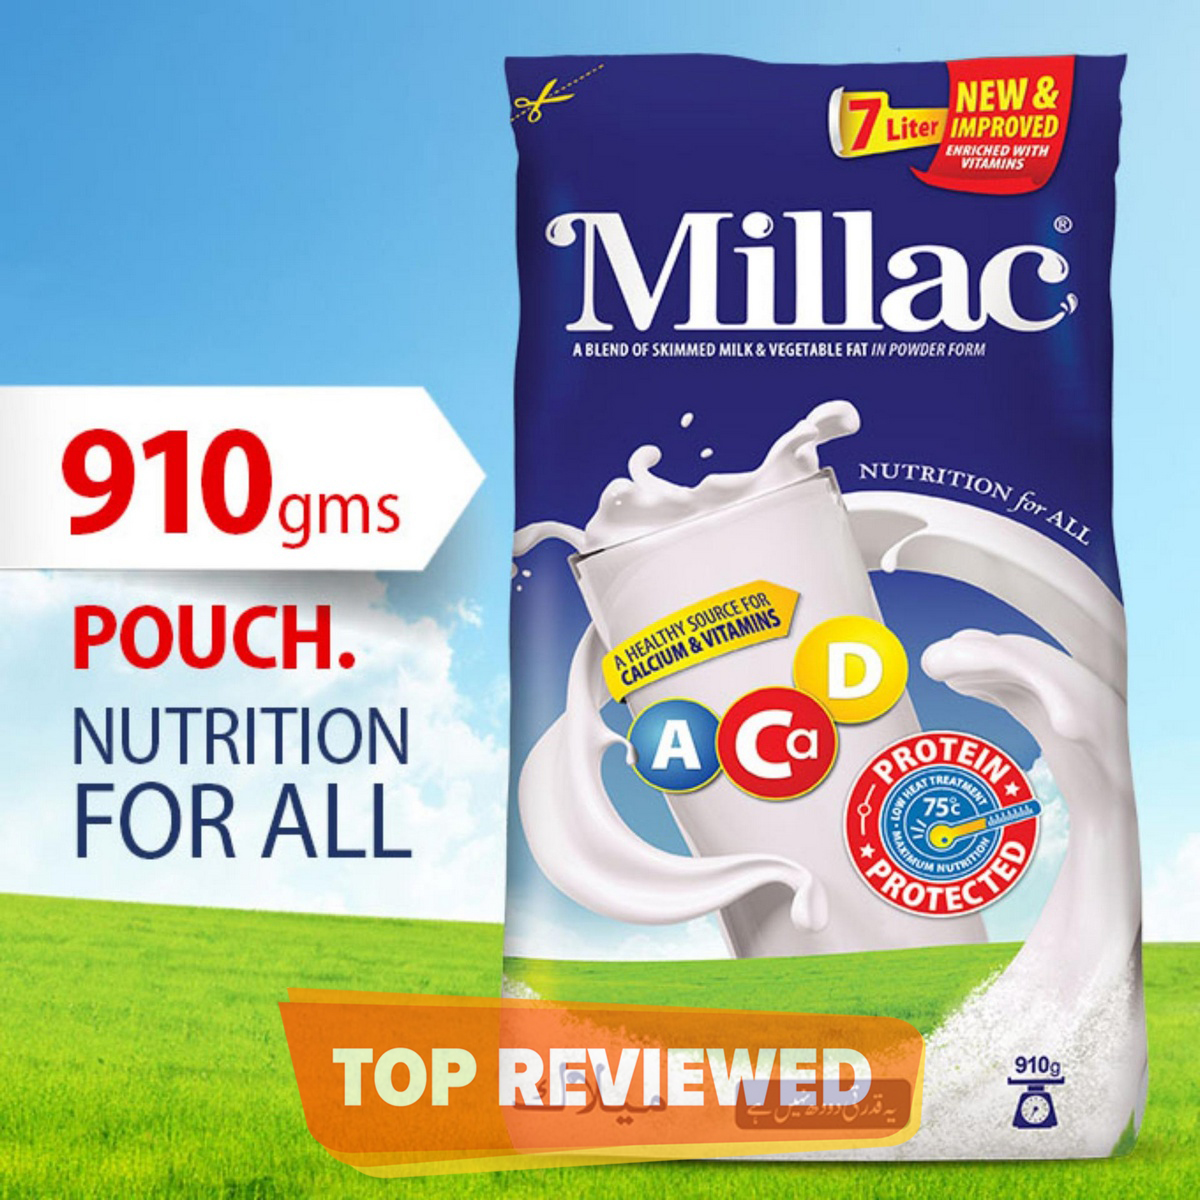 Millac - Nutritional For All - 910gm Pouch